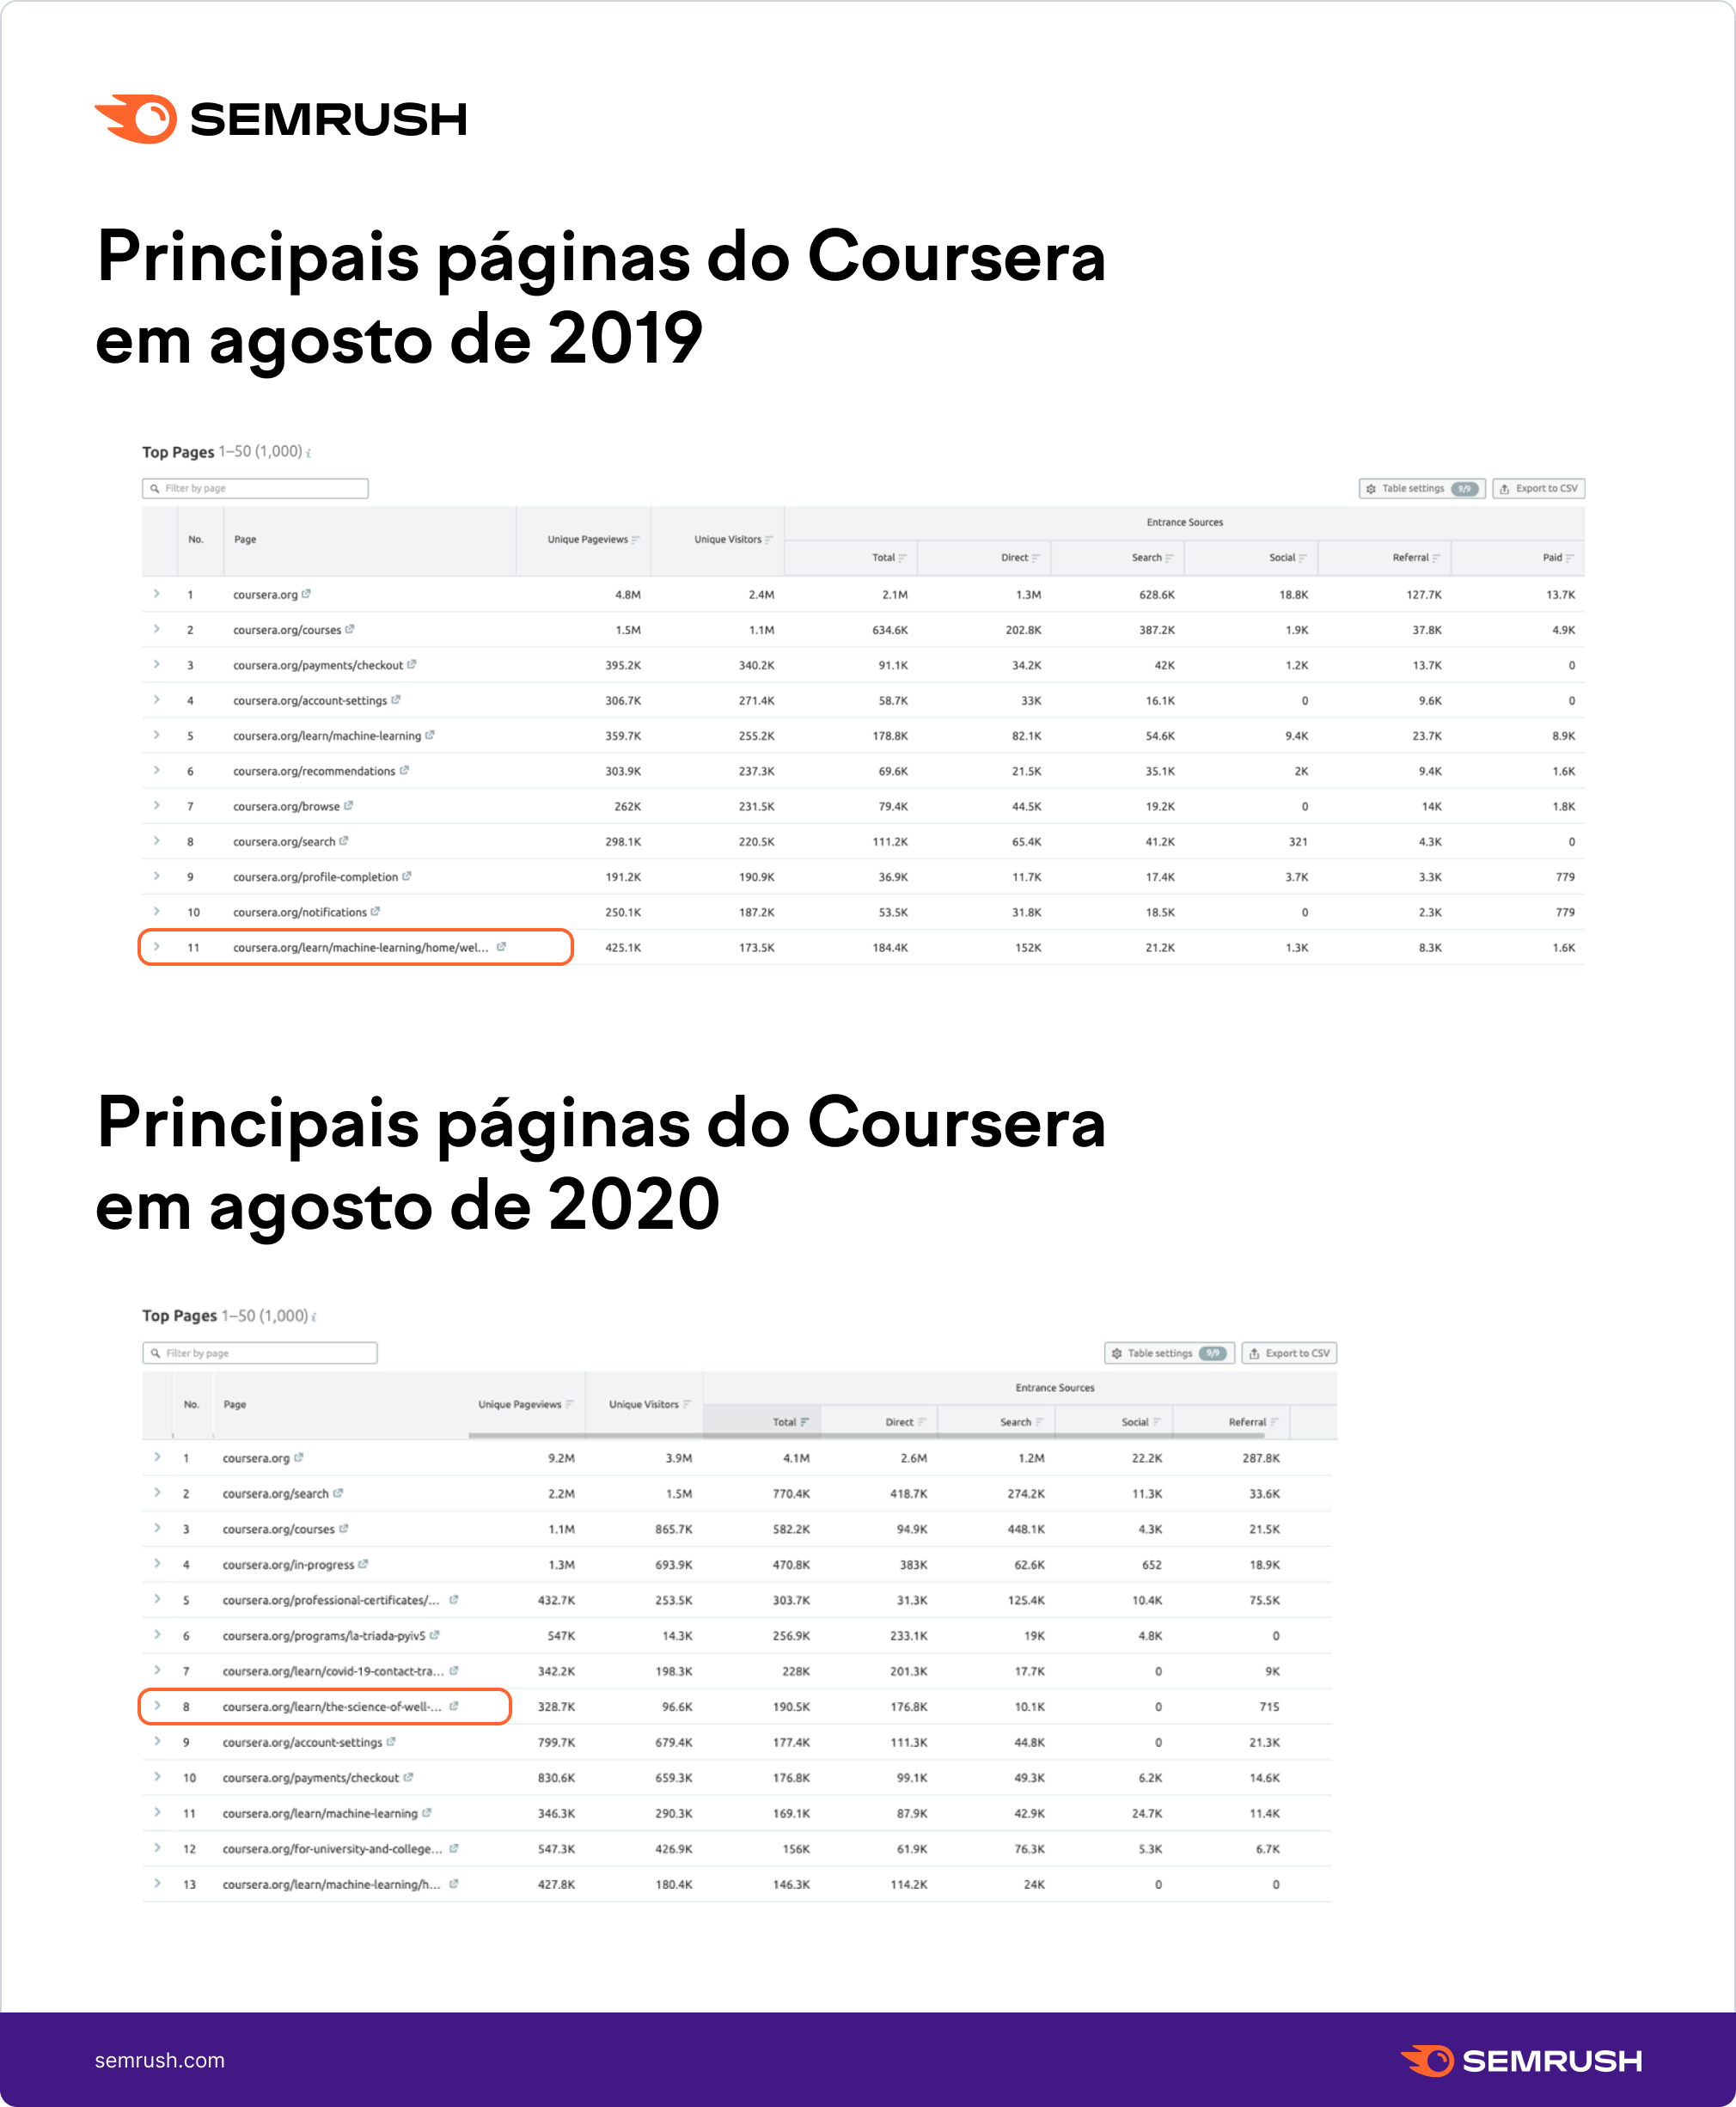 Coursera, Top Pages